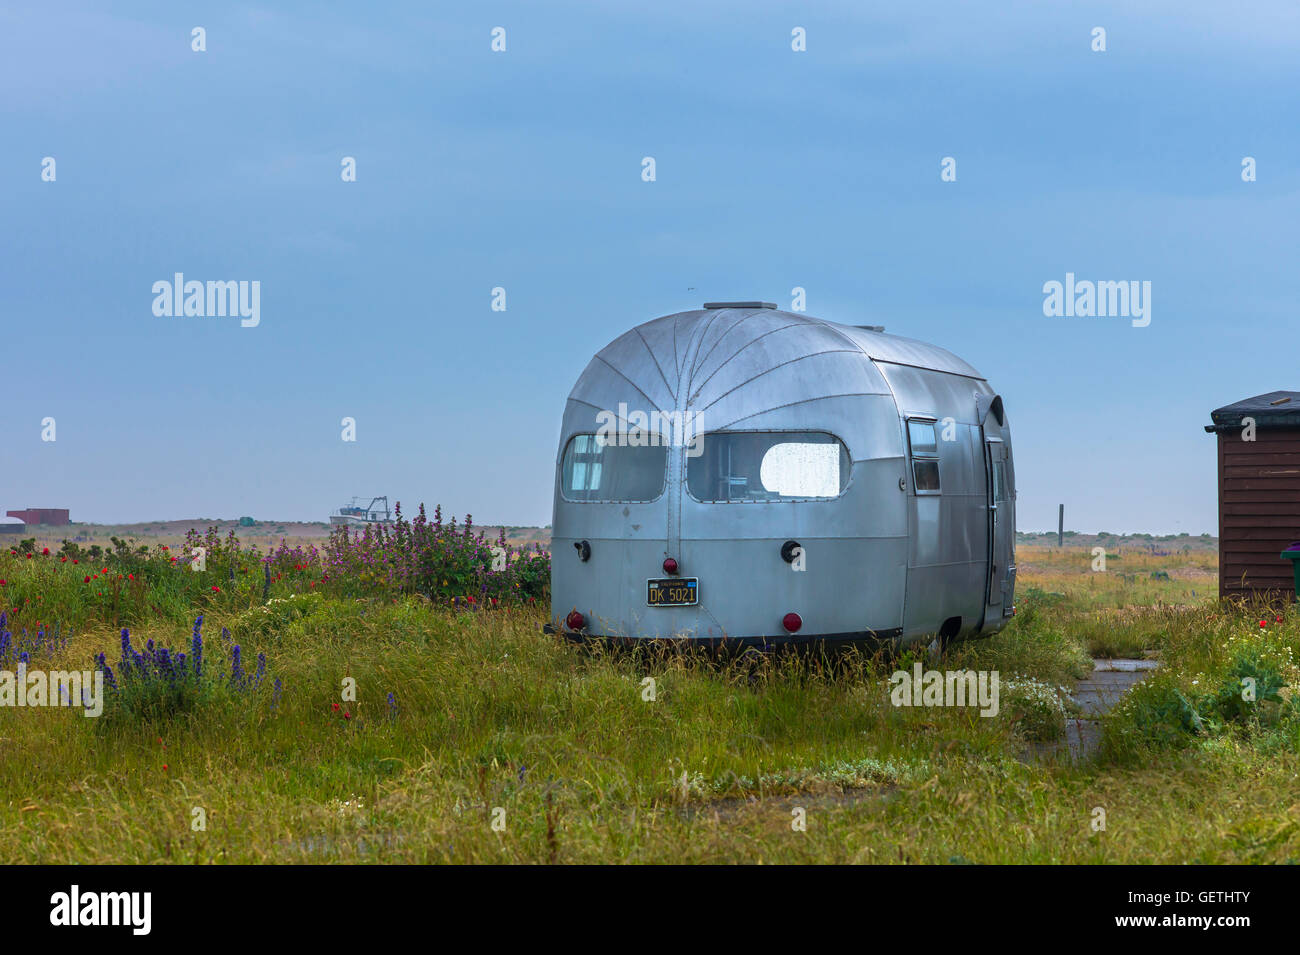 Airstream Caravan Stockfotos Airstream Caravan Bilder